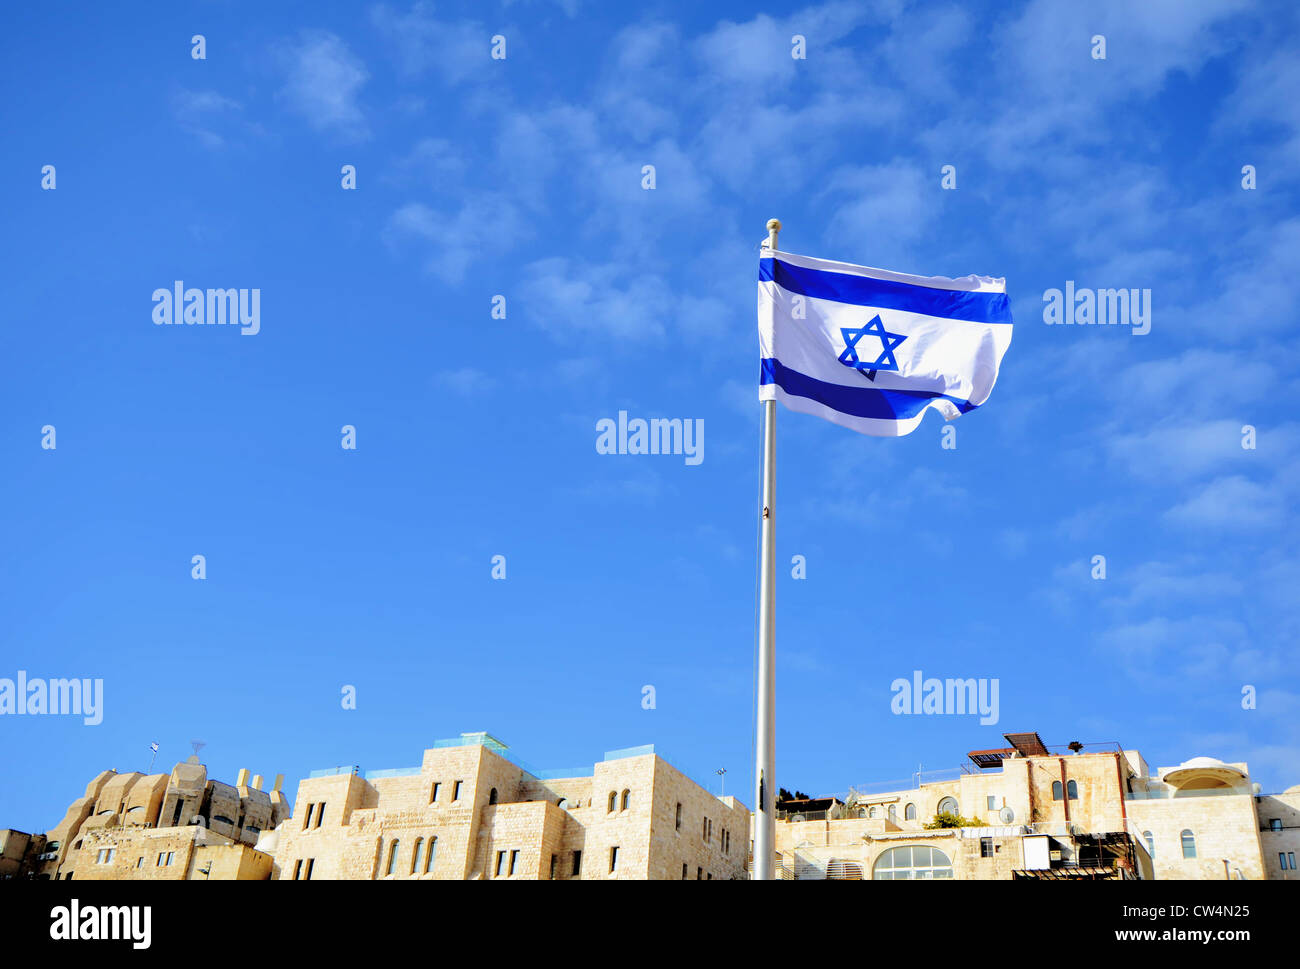 01c9e6fbb0d Israel Flag Stock Photos   Israel Flag Stock Images - Alamy